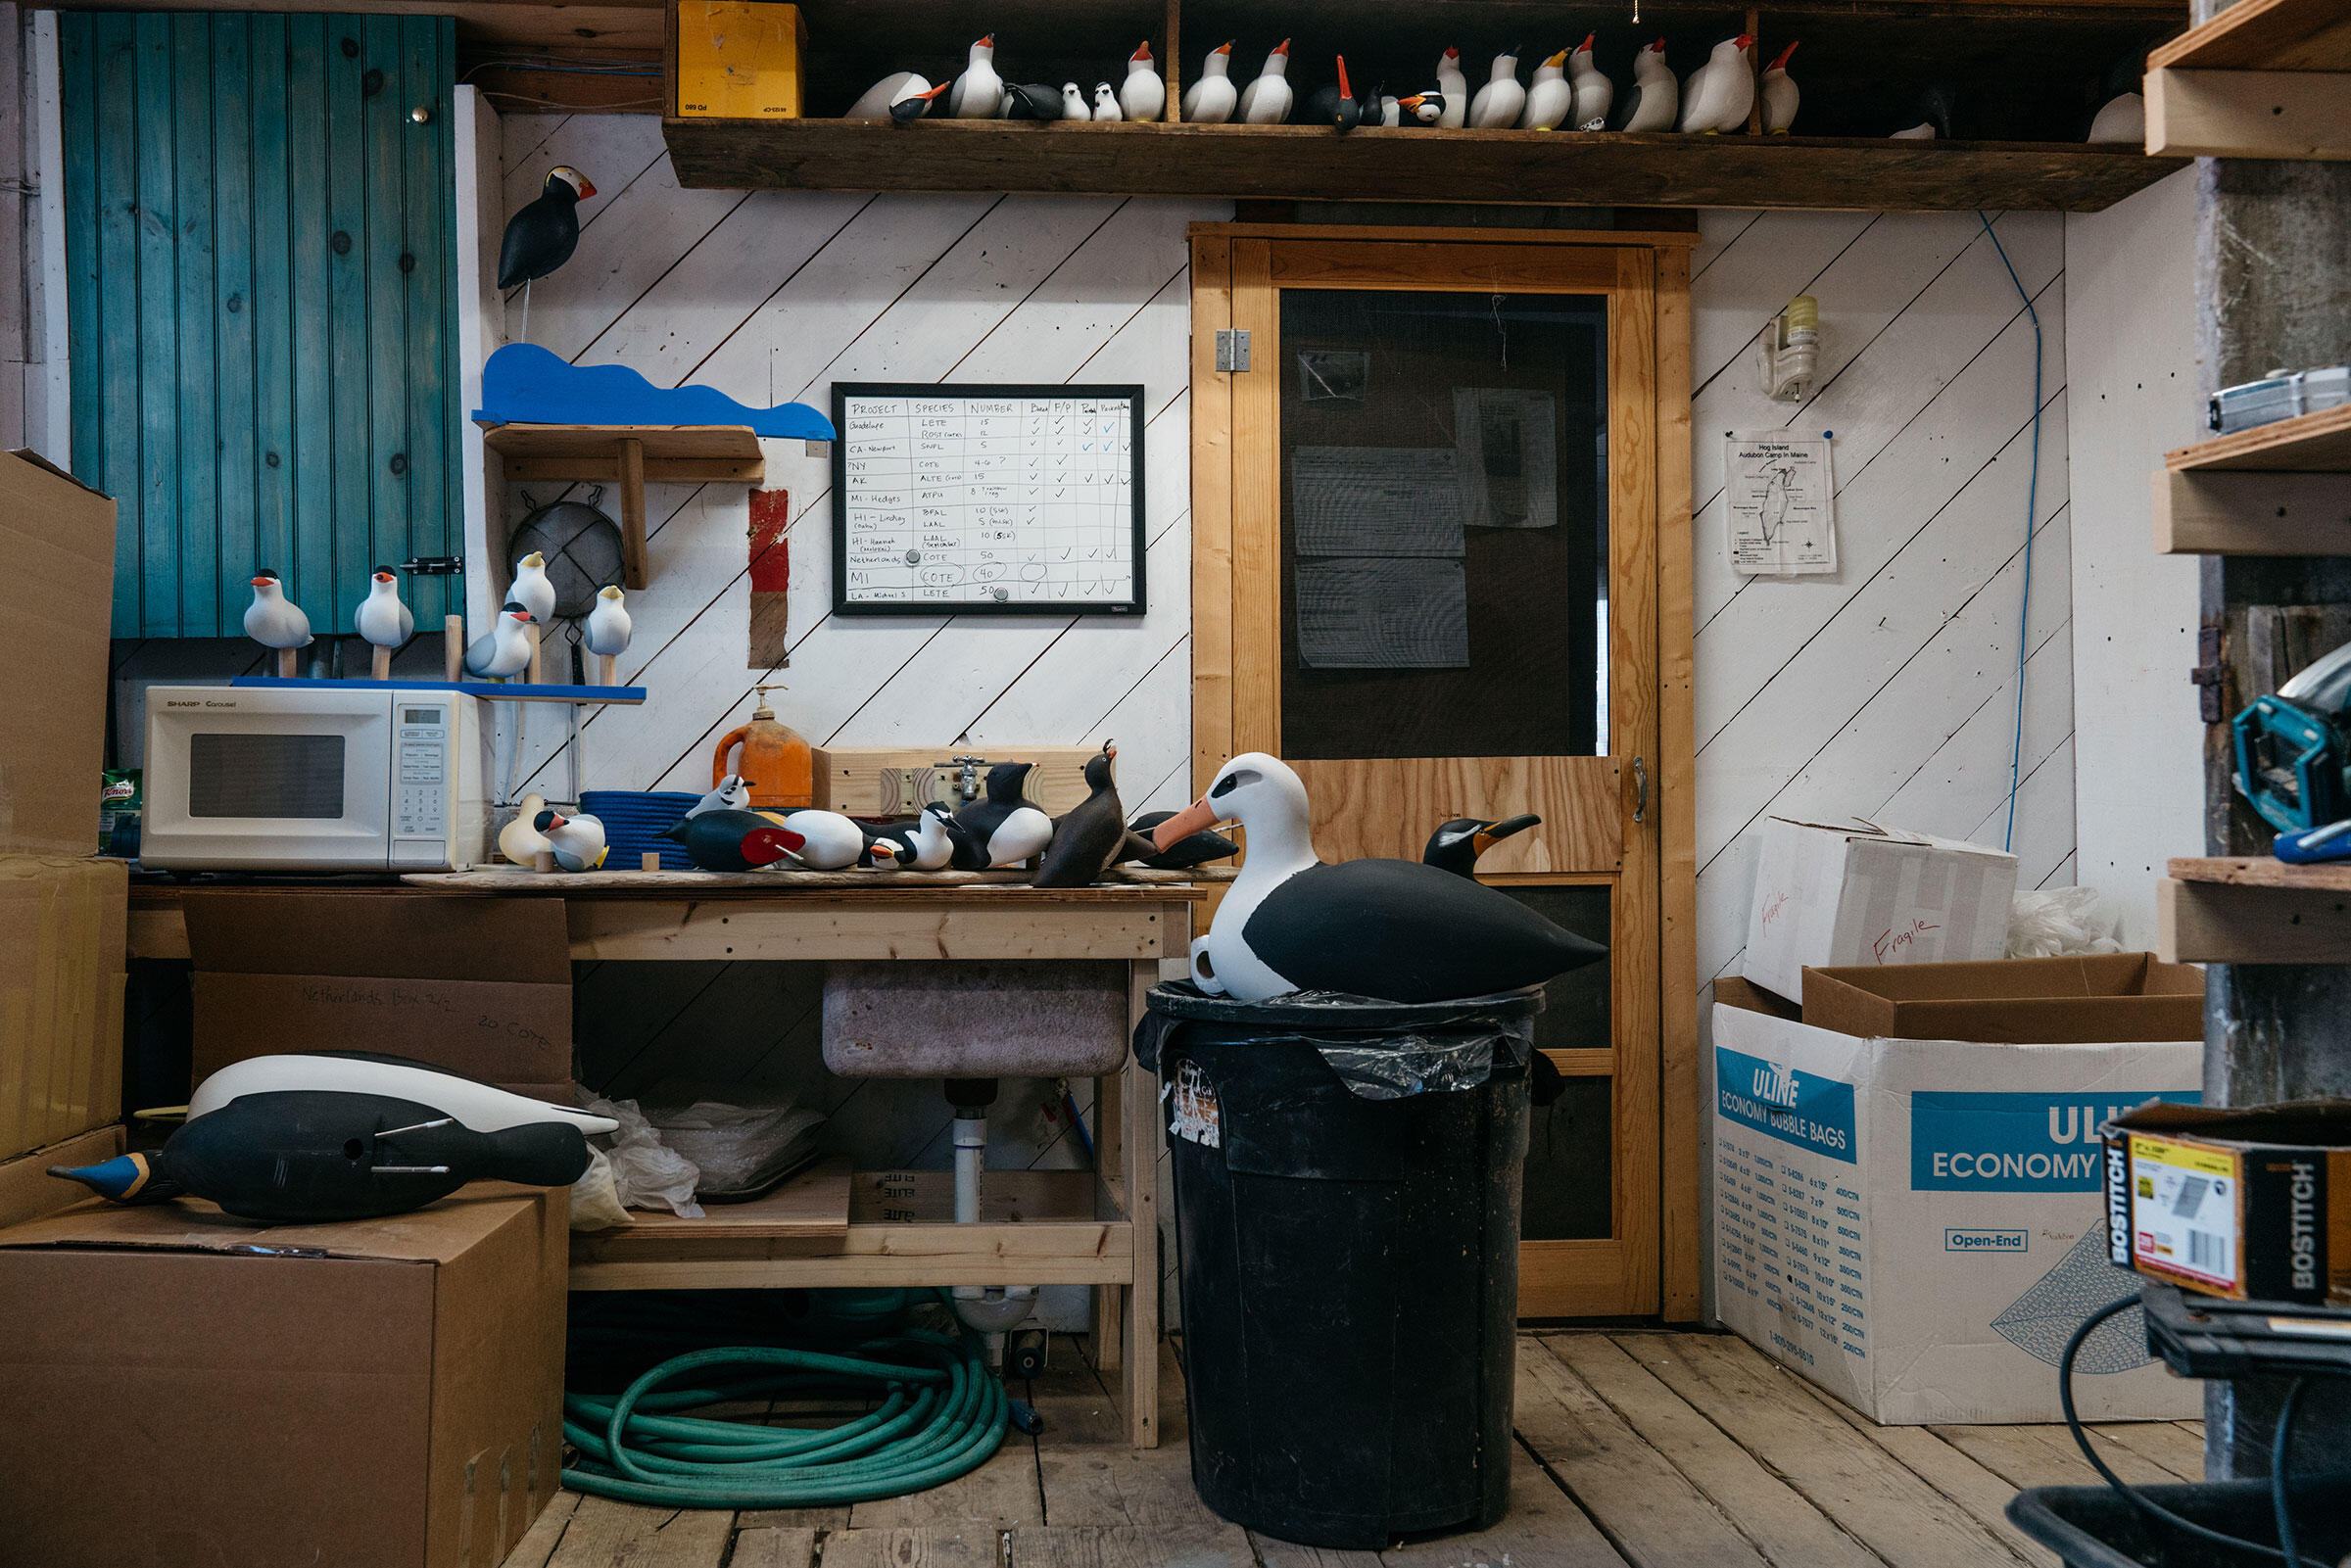 The decoy operation recently changed hands from Jim and Nancy Henry, owners of Mad River Decoy in the mountains of Vermont, to the Audubon Seabird Restoration Program (Project Puffin) in Bremen, Maine. Tristan Spinski